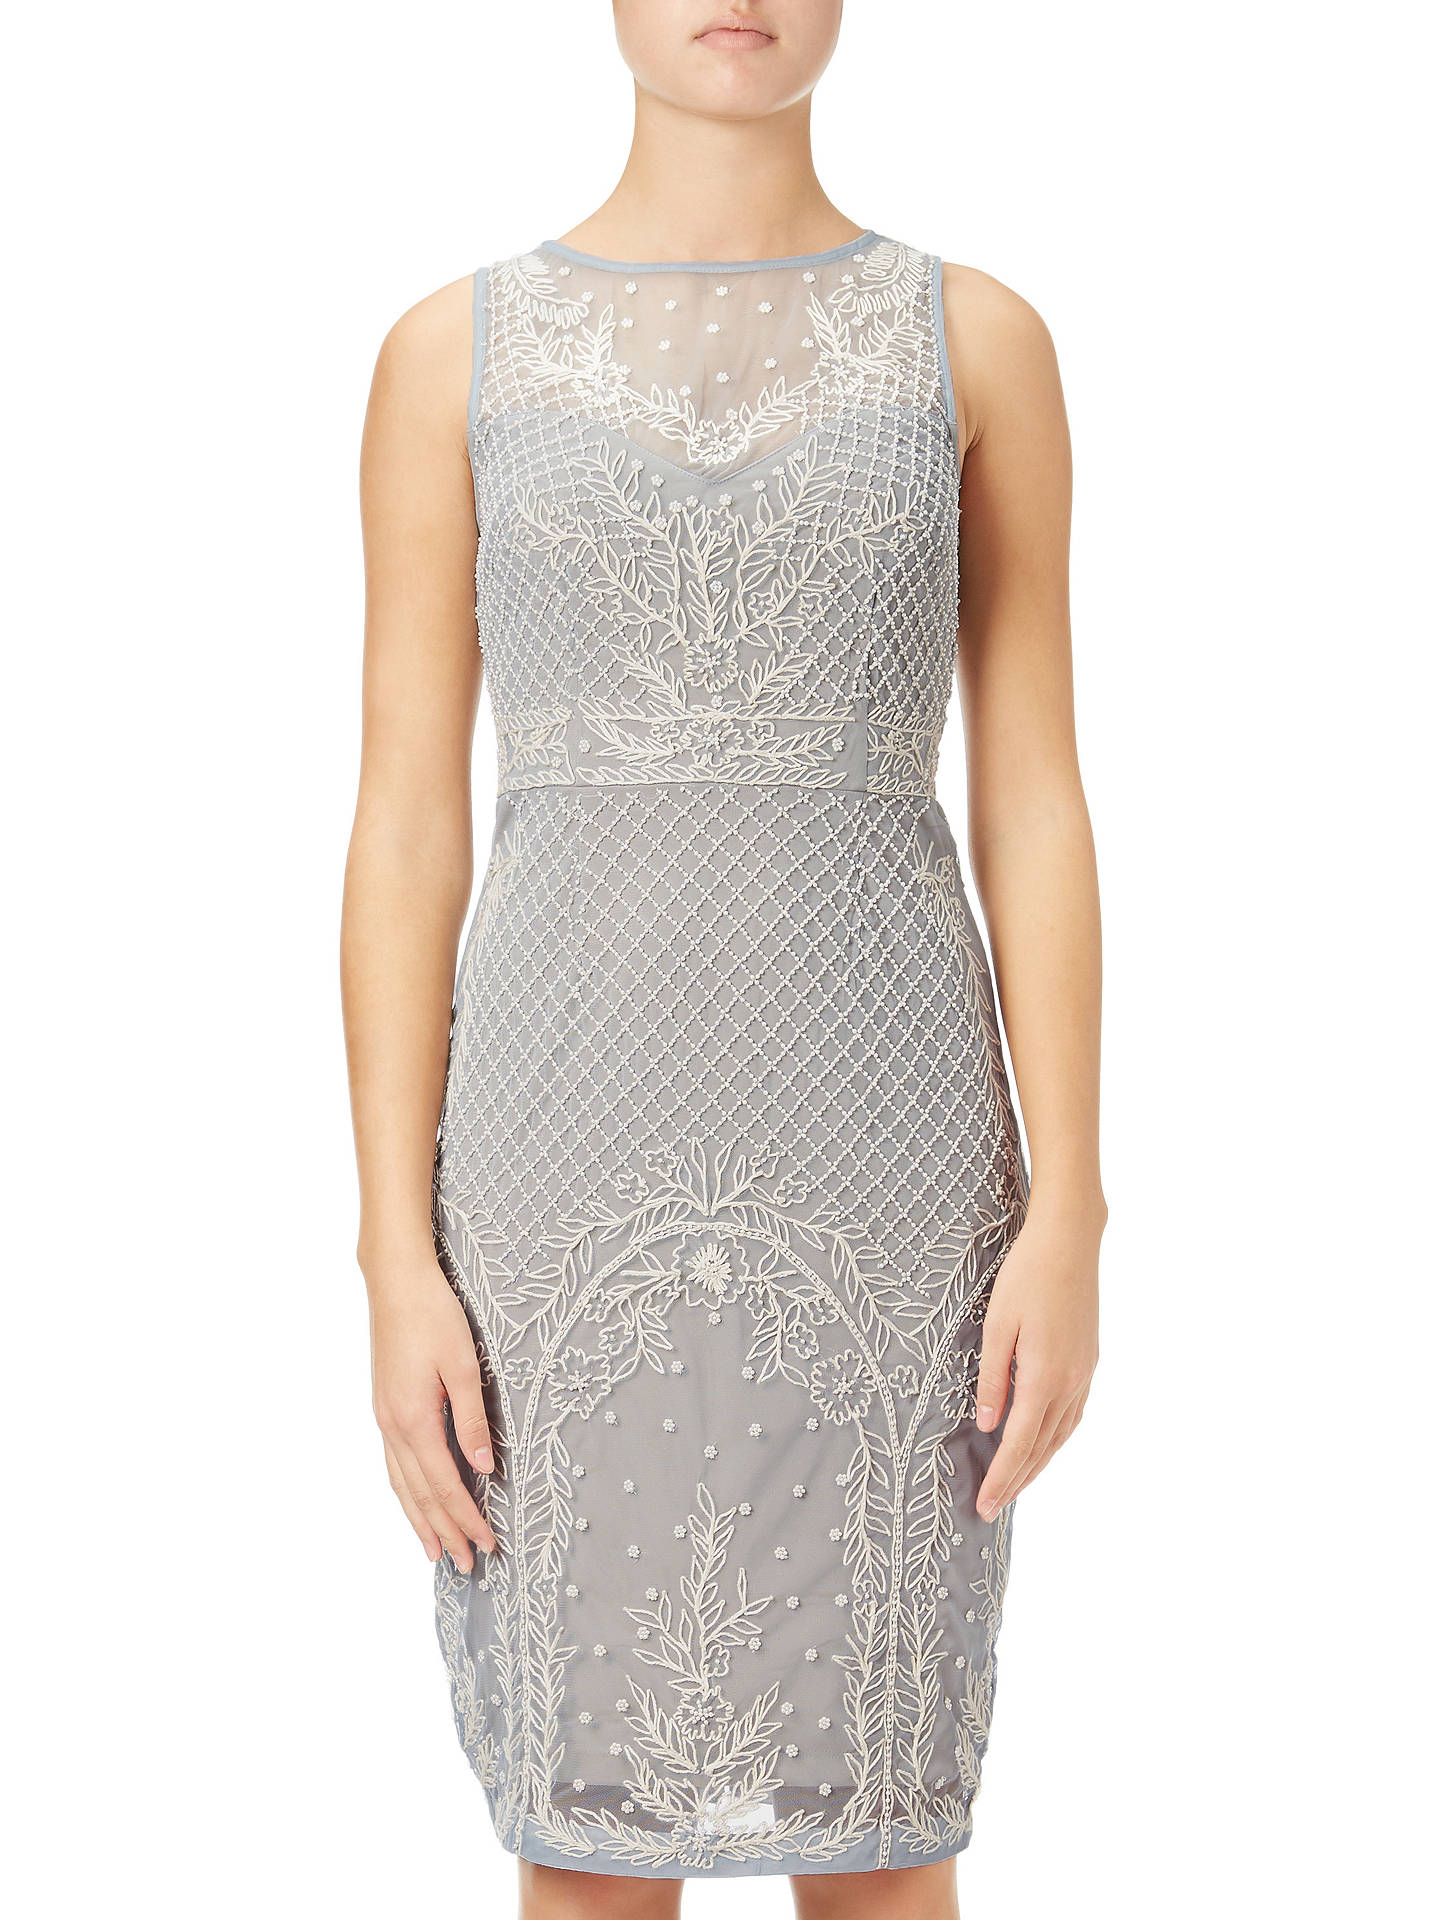 aa185ad9 Buy Adrianna Papell Beaded Illusion Cocktail Dress, Blue Heather/Nude, 6  Online at ...